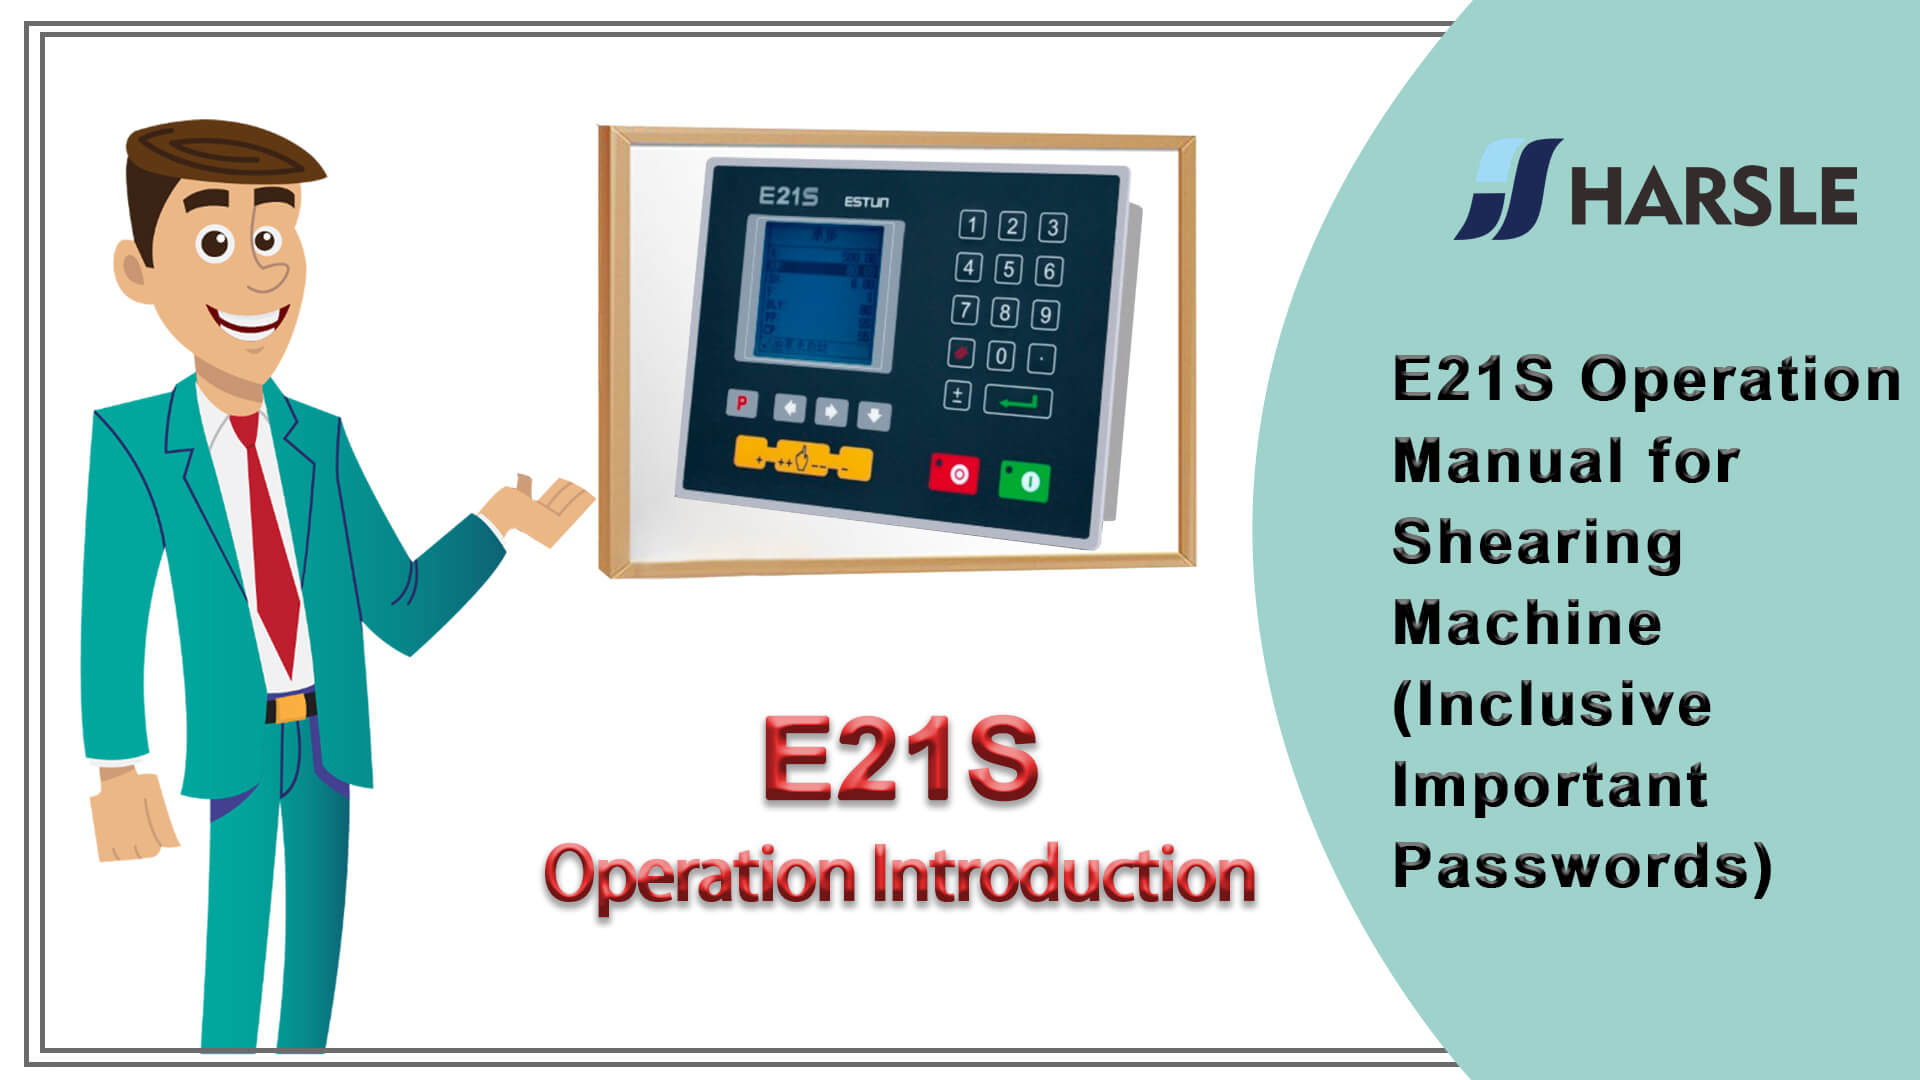 E21S Operation Manual for Shearing Machine (Inclusive Important Passwords)